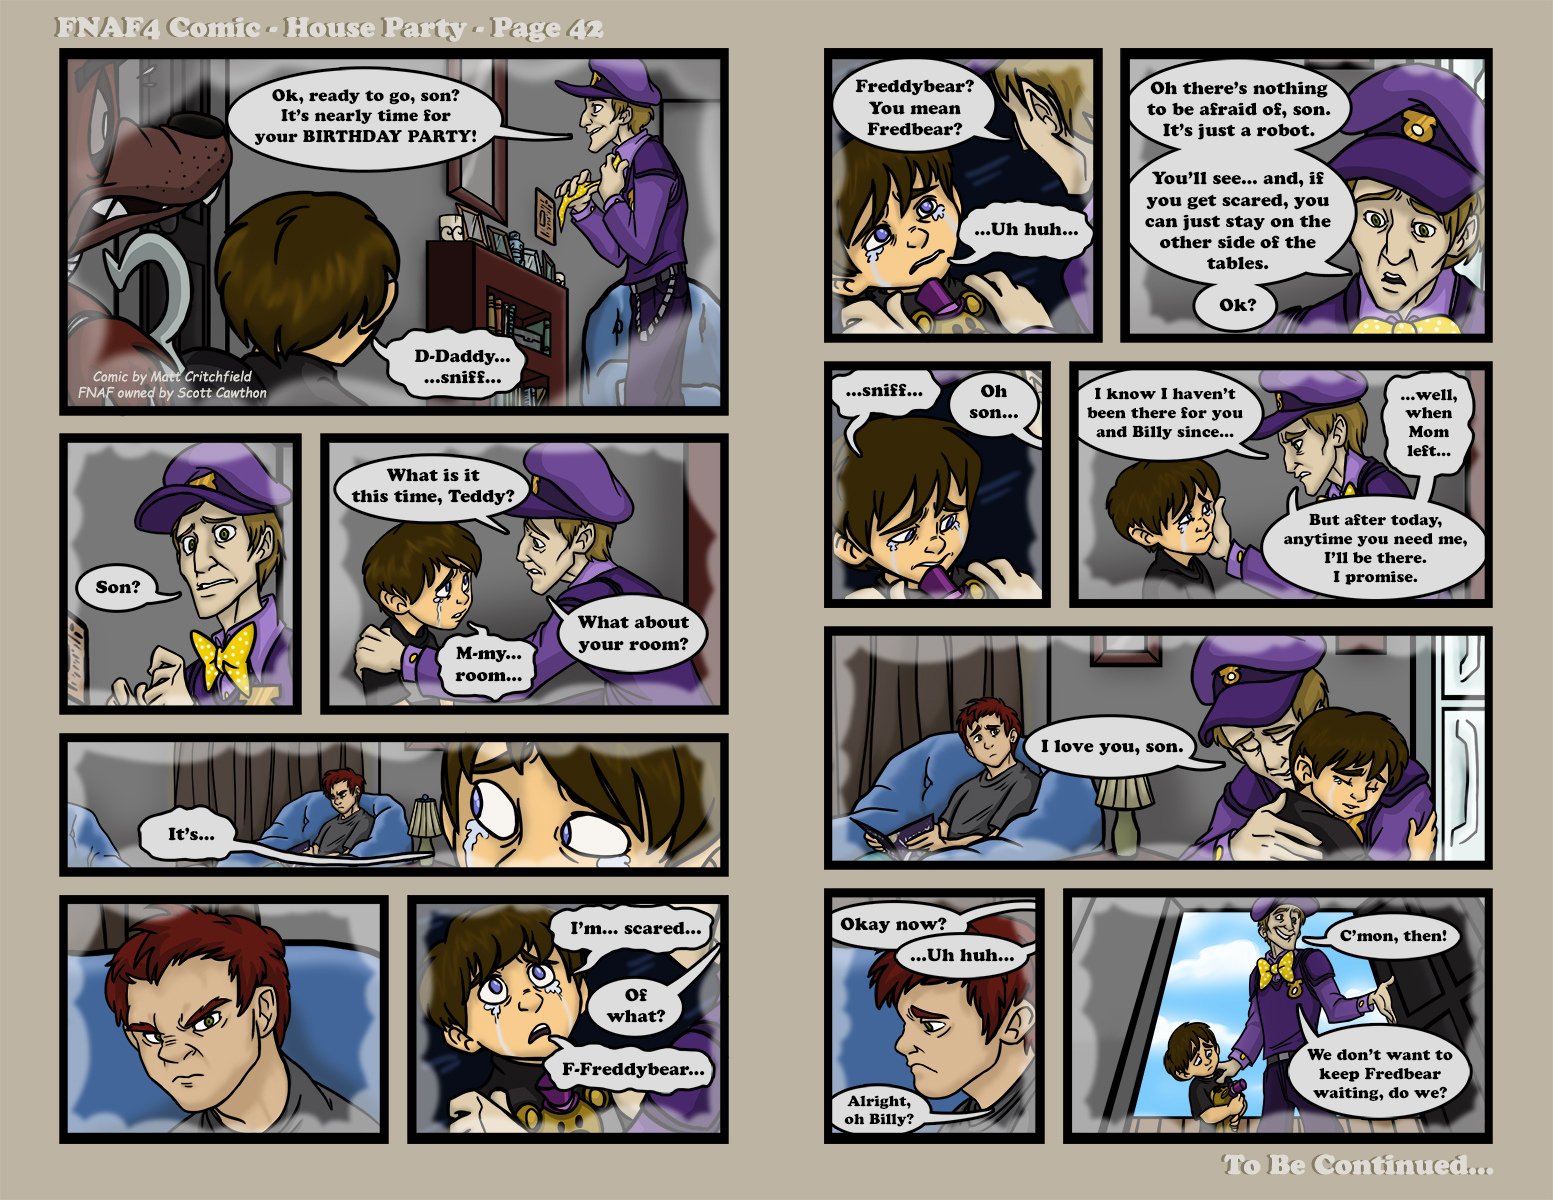 Fnaf Comics En Español fnaf4 comic - house party - page 42 - 12-23-16